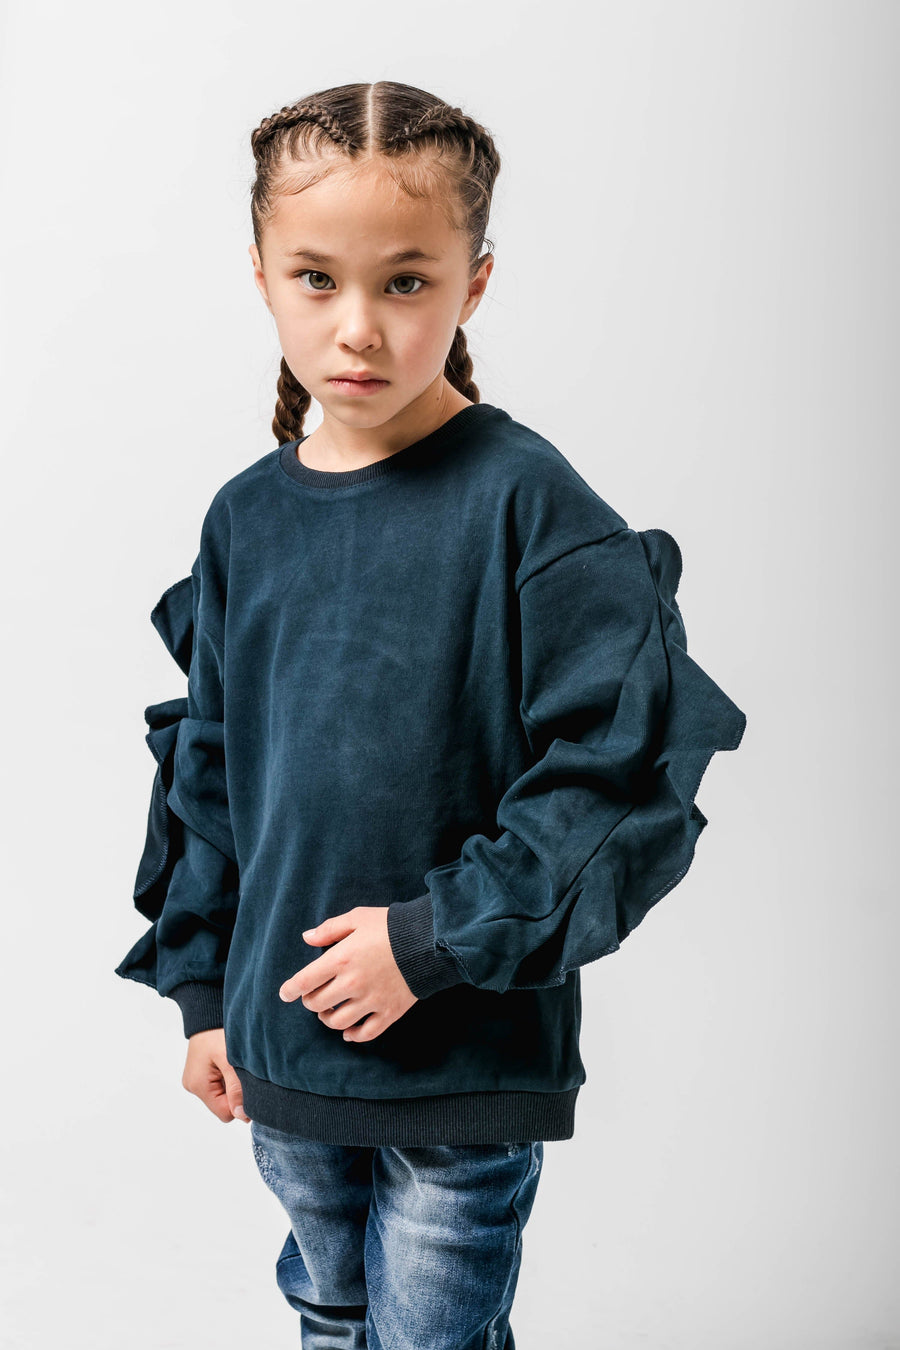 Giselle Long Sleeve Jumper With Frills In Navy Blue From Little Attitude.